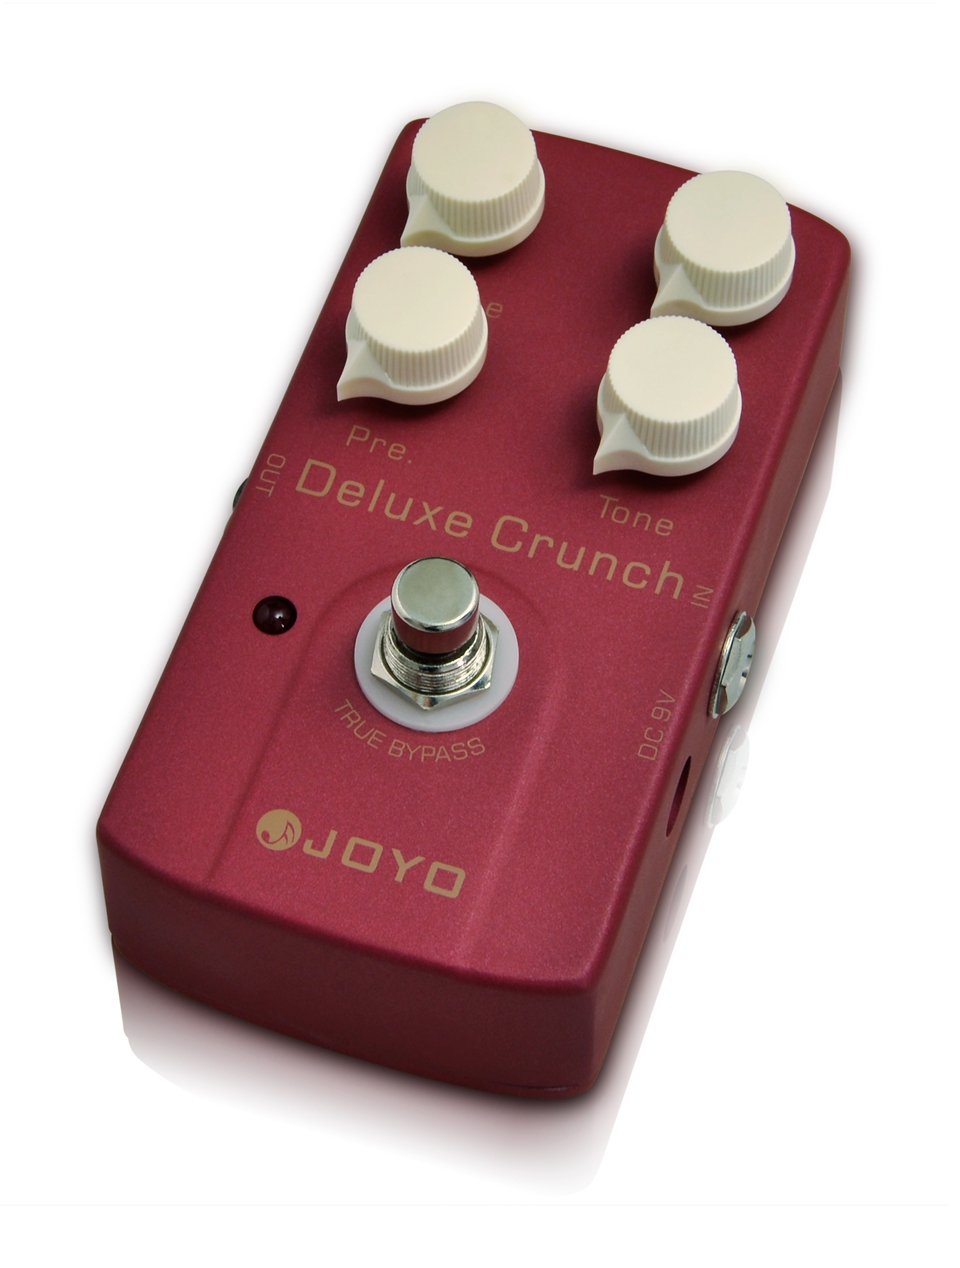 JOYO JF 39 Electric Guitar Pedal Deluxe Crunch Luxury Distorted Almighty Crunch Distortion Classic Crunch Higher